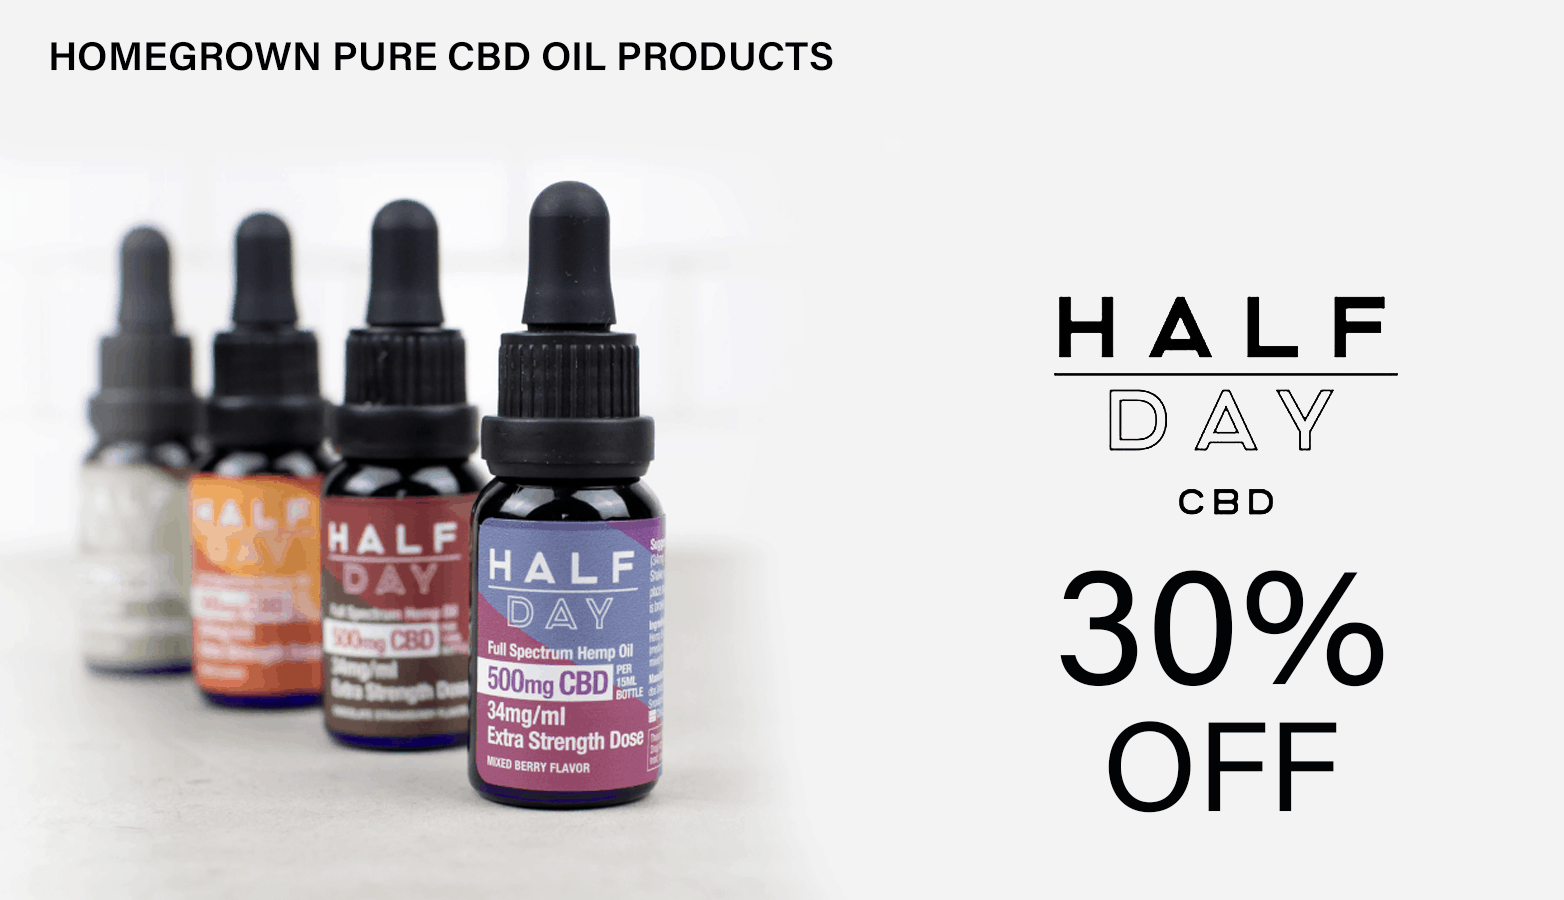 Half Day CBD Coupon Graphic